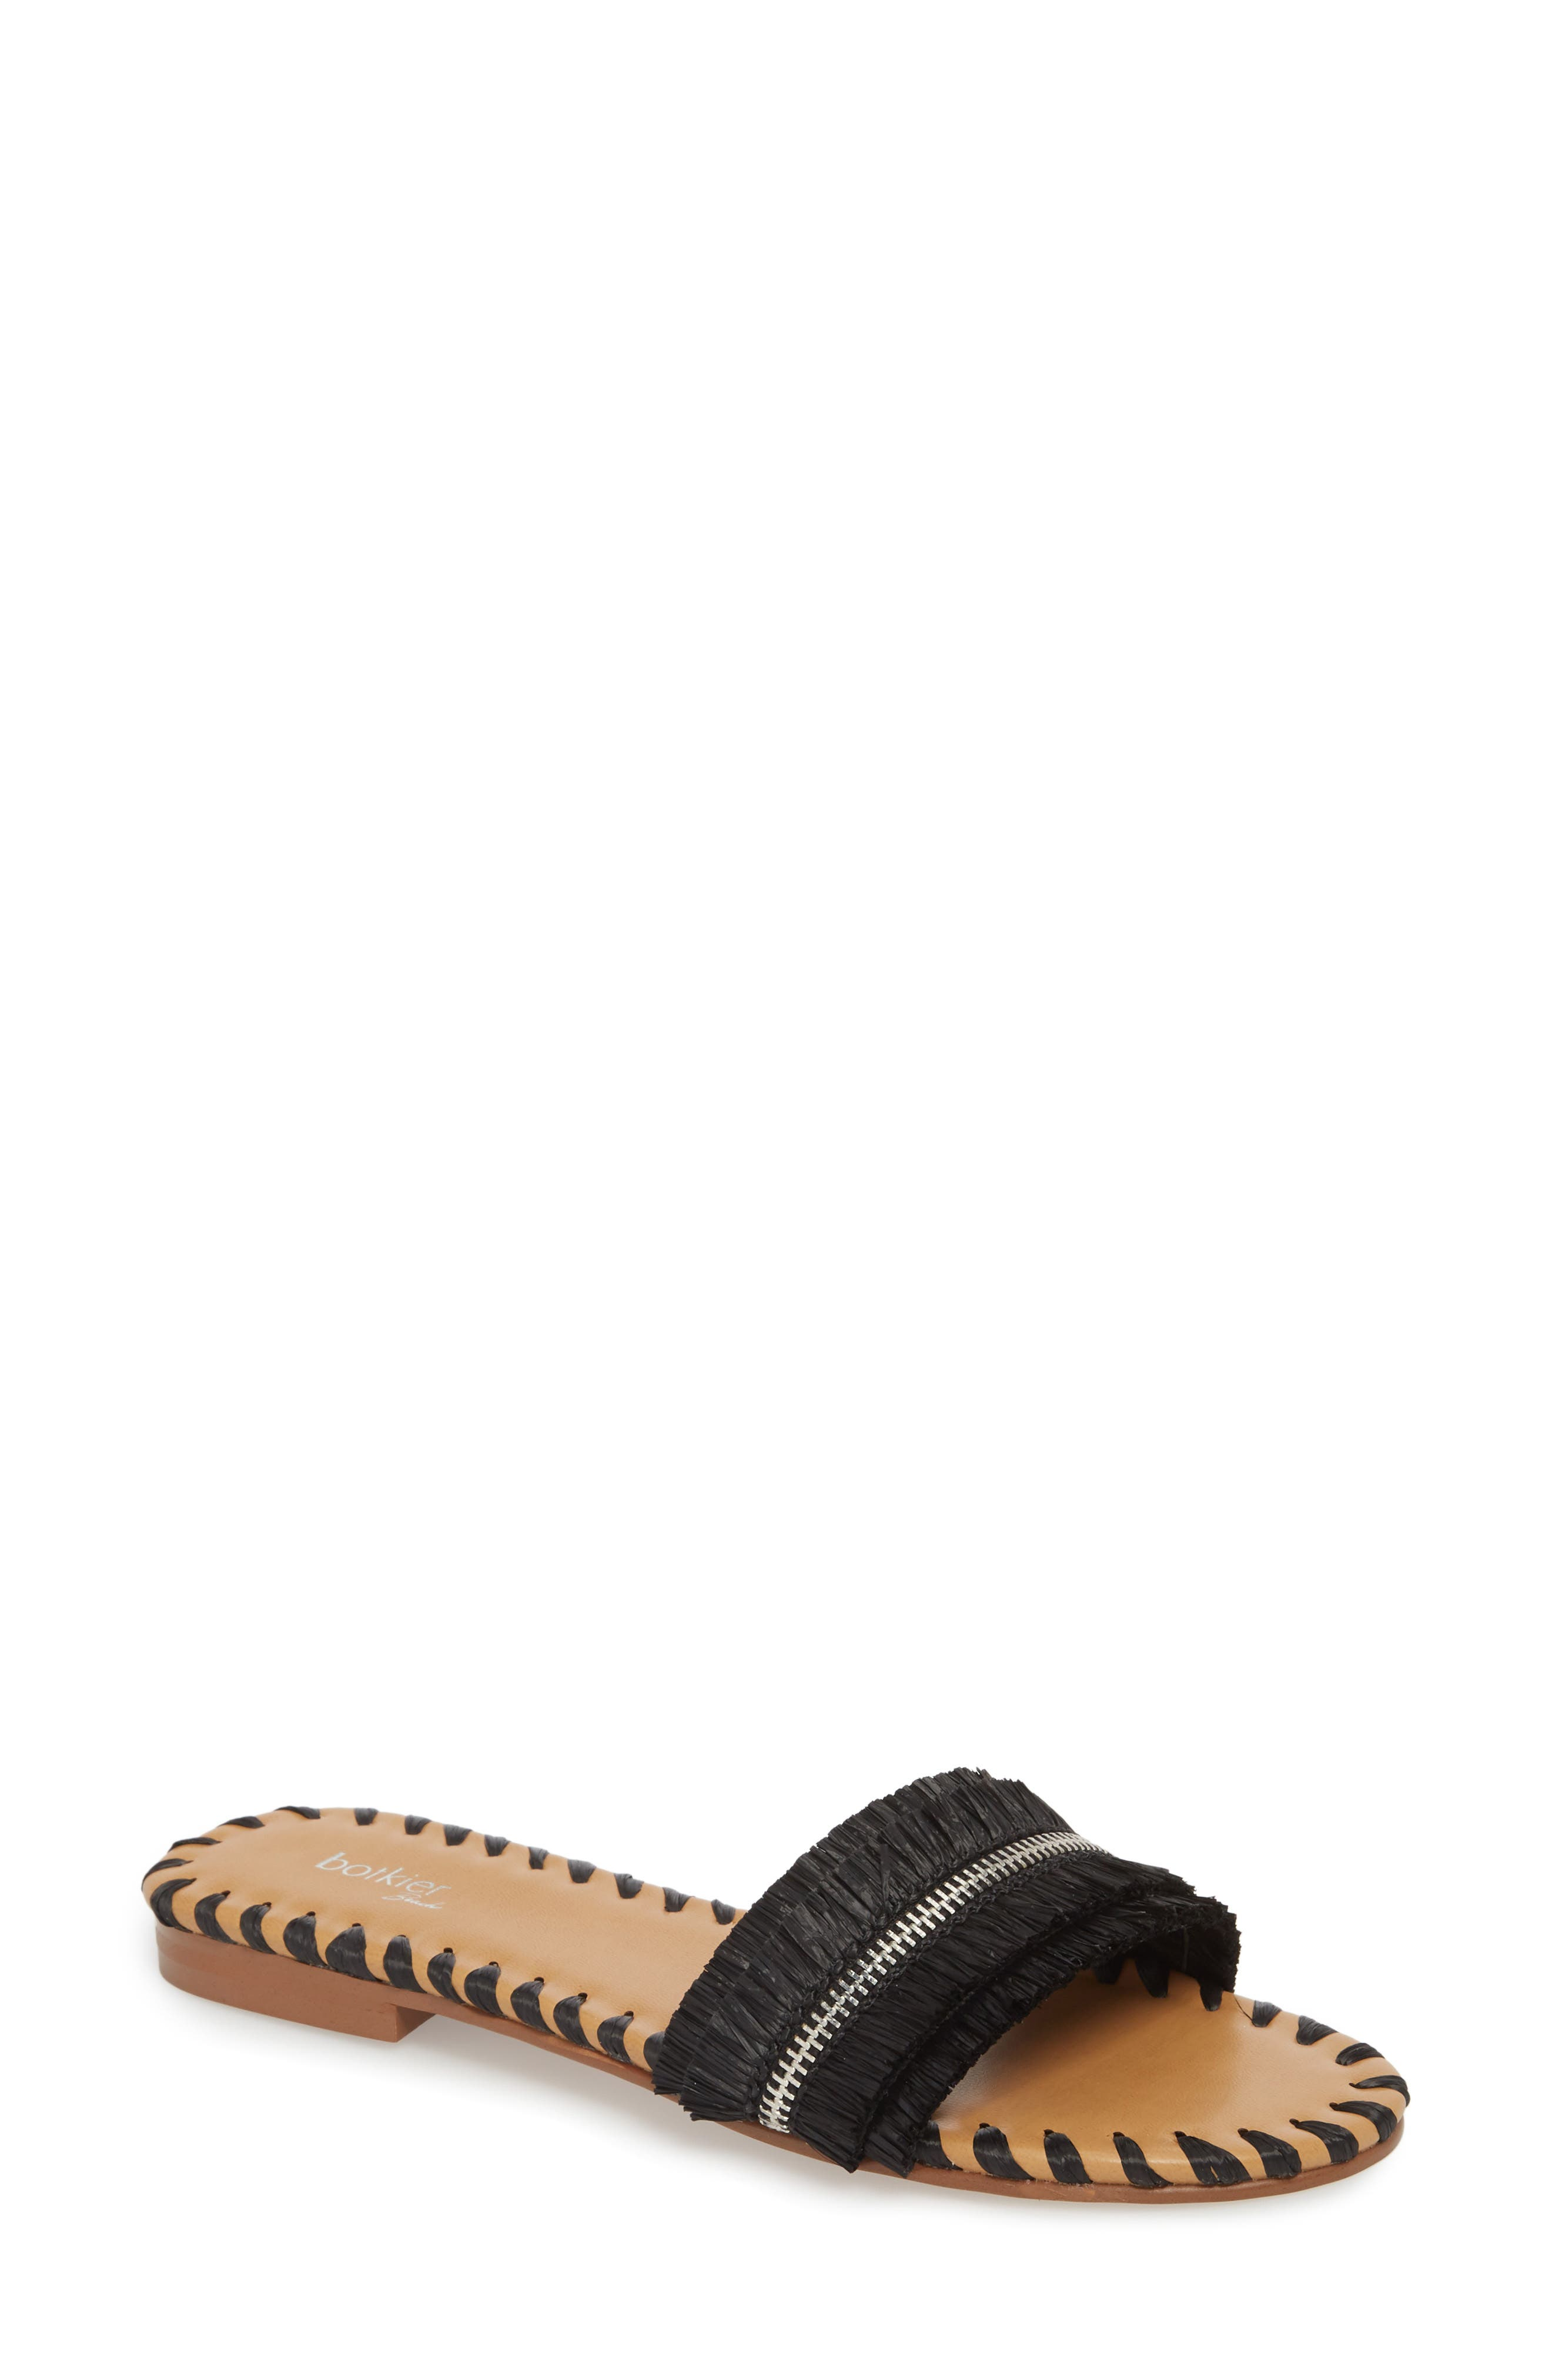 Bonnie Slide Sandal,                         Main,                         color,